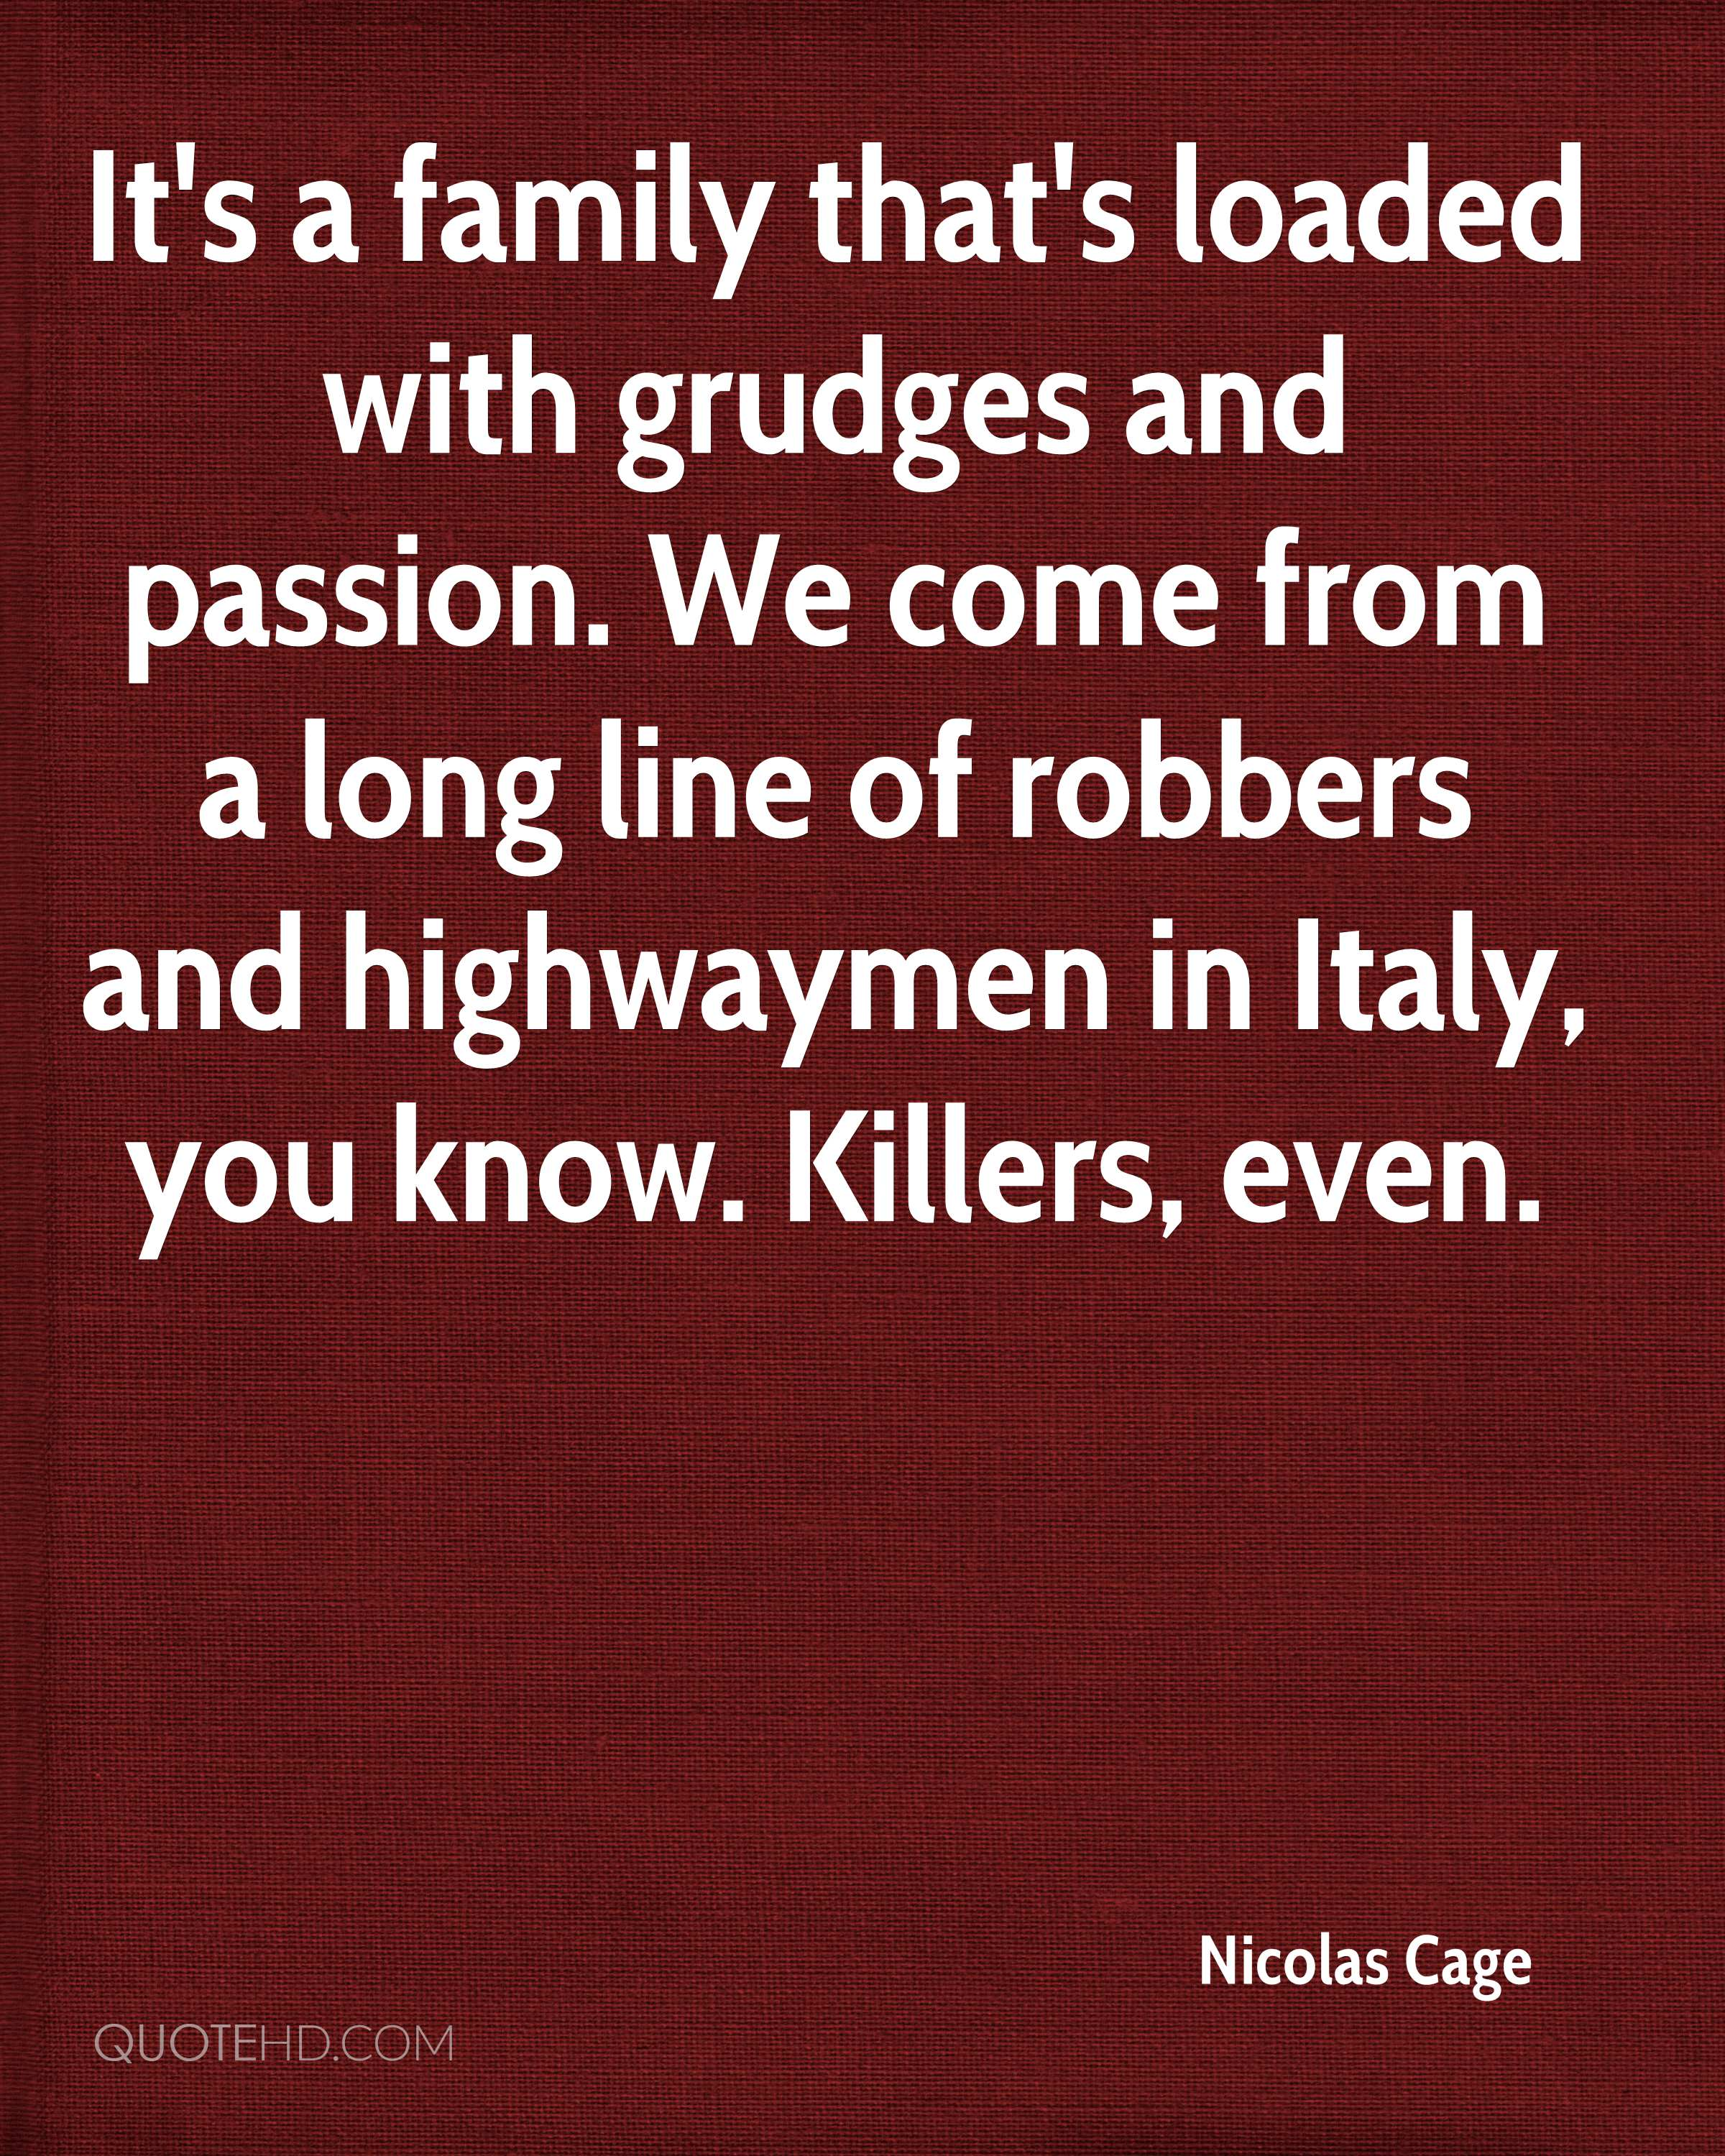 It's a family that's loaded with grudges and passion. We come from a long line of robbers and highwaymen in Italy, you know. Killers, even.